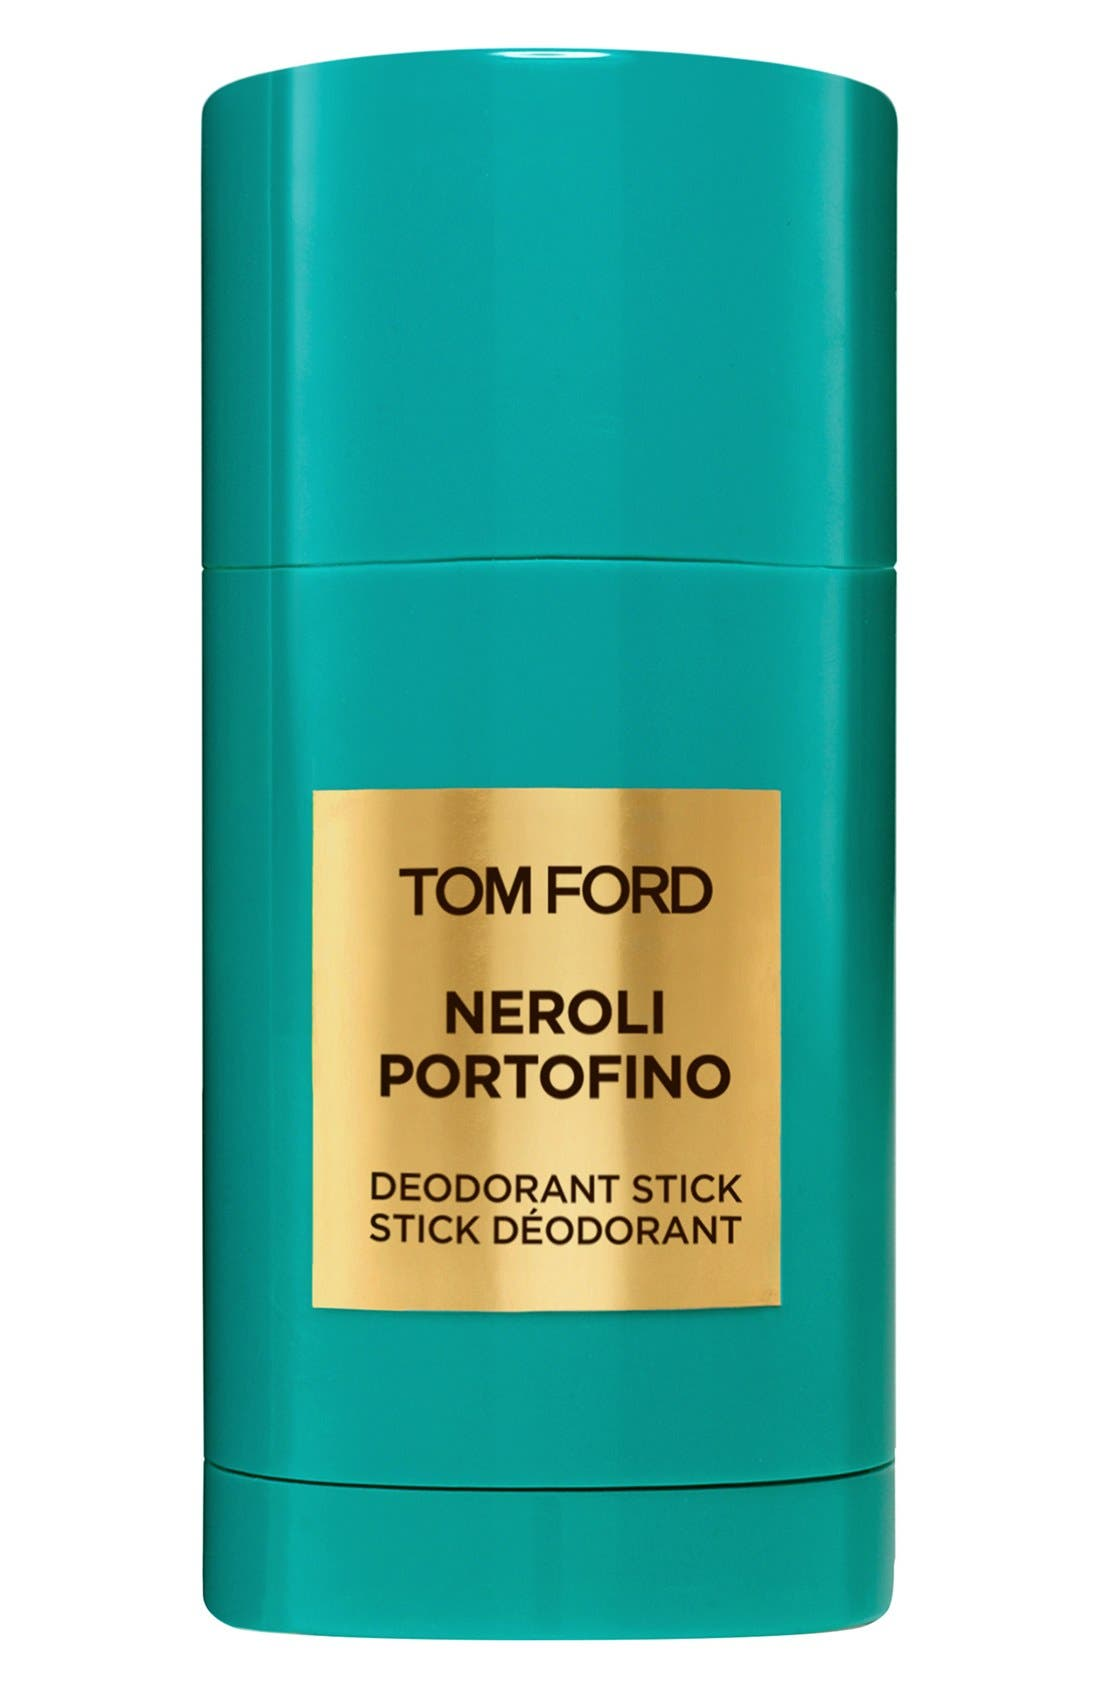 Tom Ford Private Blend 'Neroli Portofino' Deodorant Stick